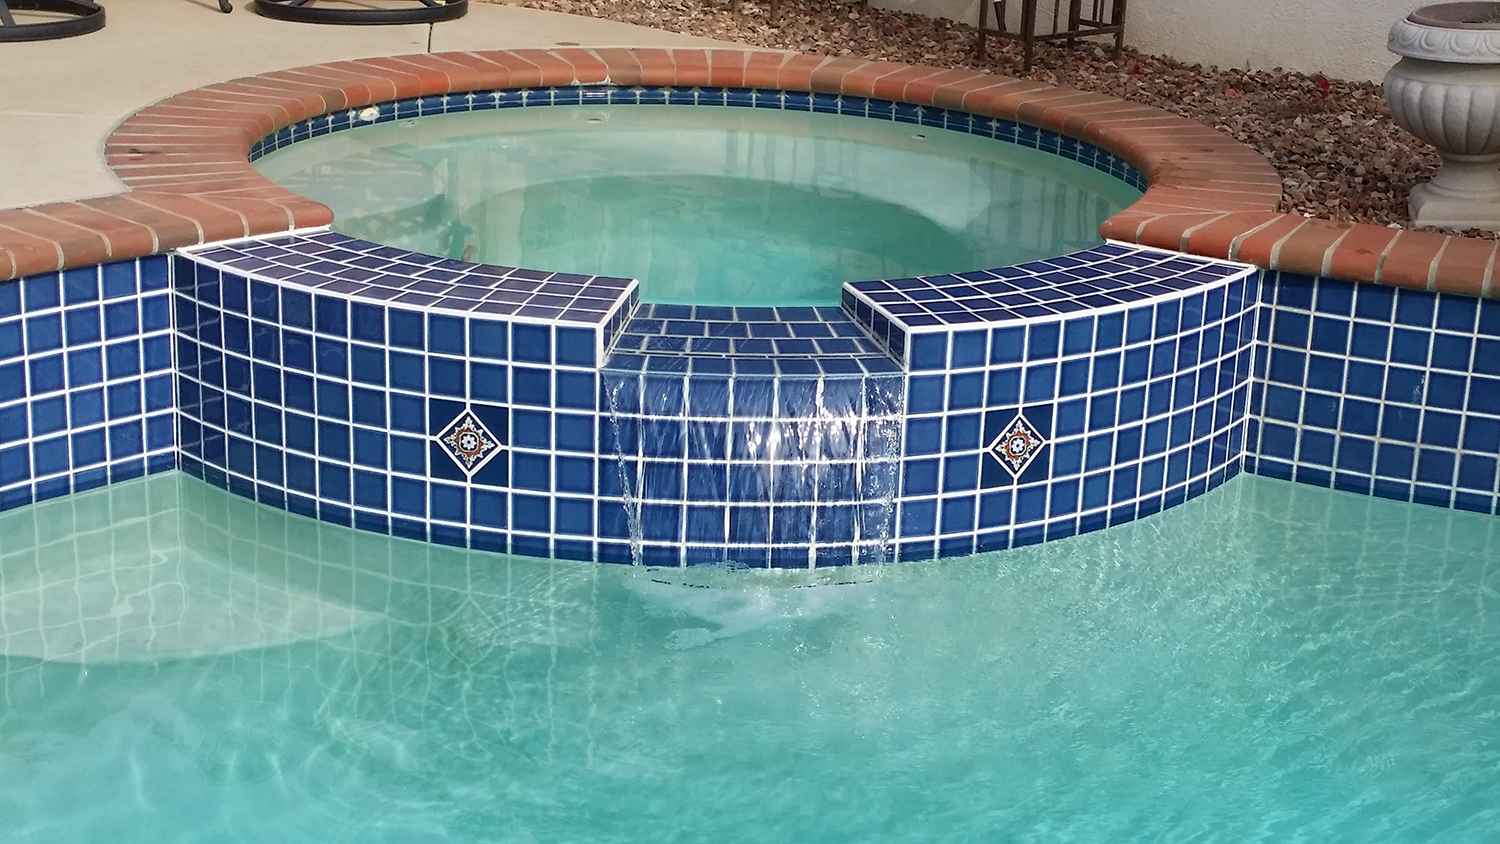 Jacuzzi Tile Repair Project